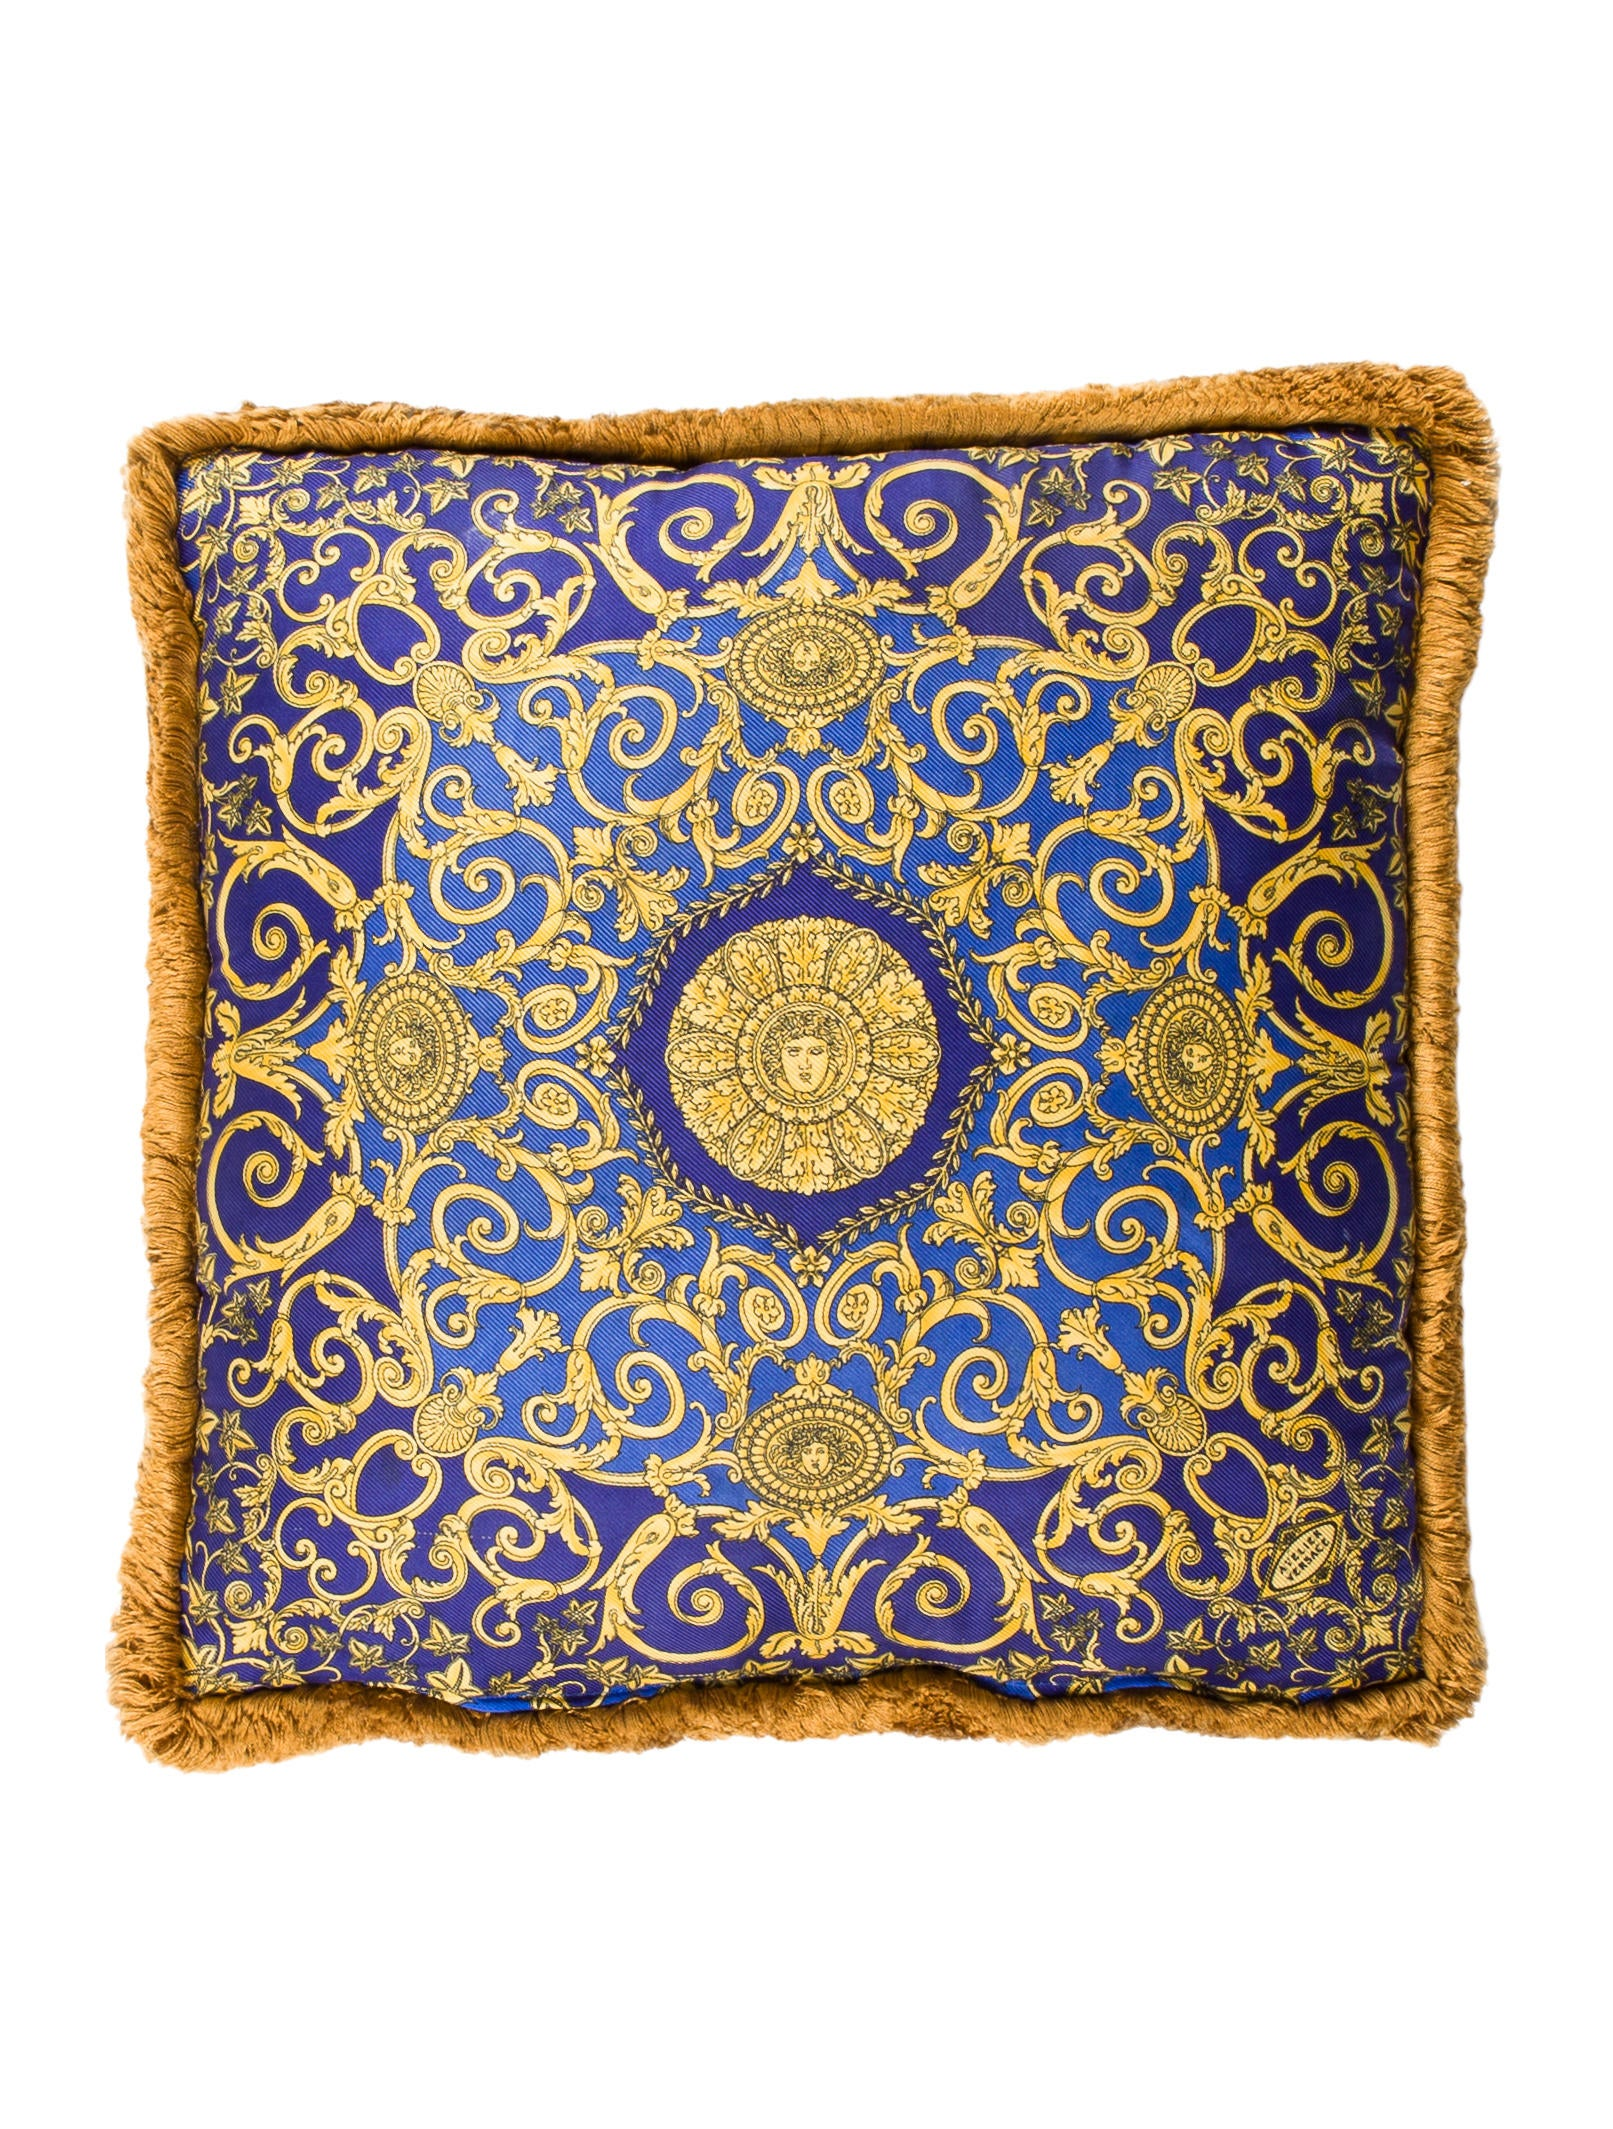 Versace Silk Throw Pillow Pillows And Throws VES30590 The